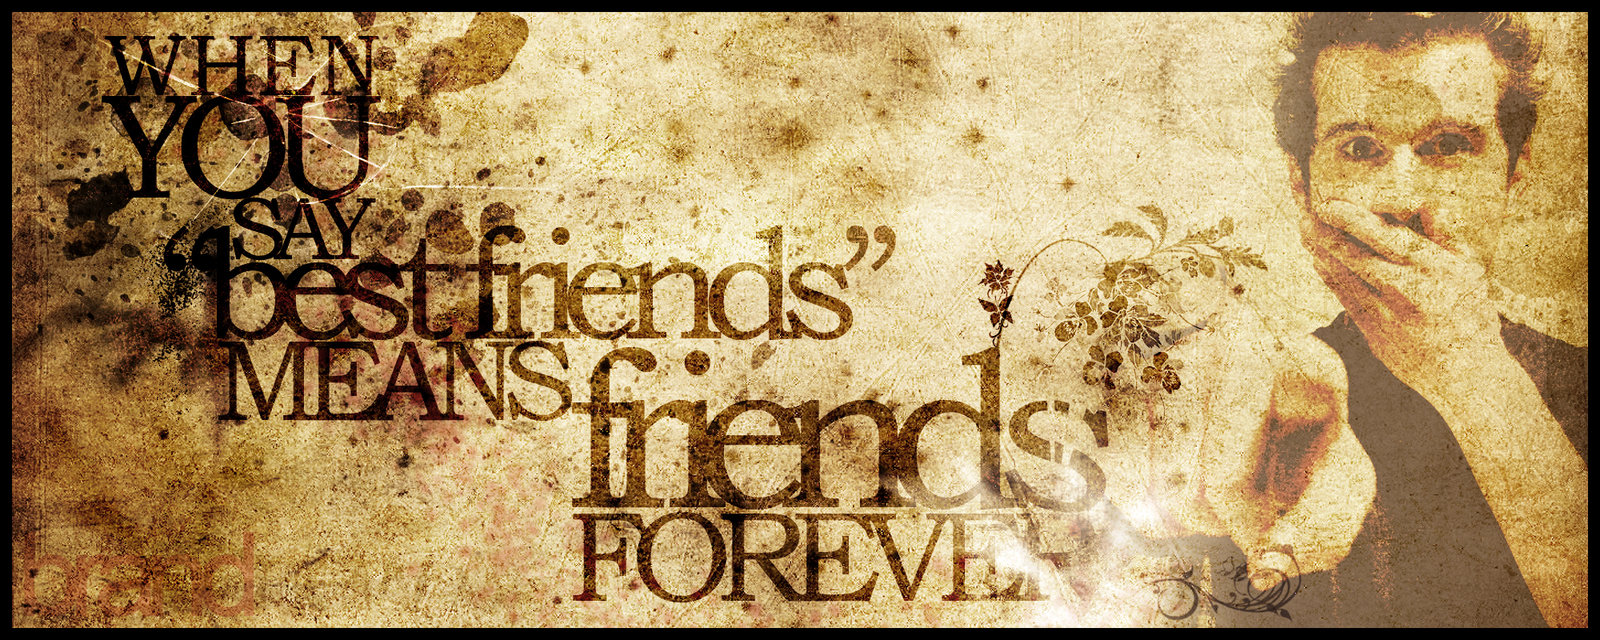 Sweet Friendship Day Wish You very Happy Friendship Day Wallpapers 1600x640